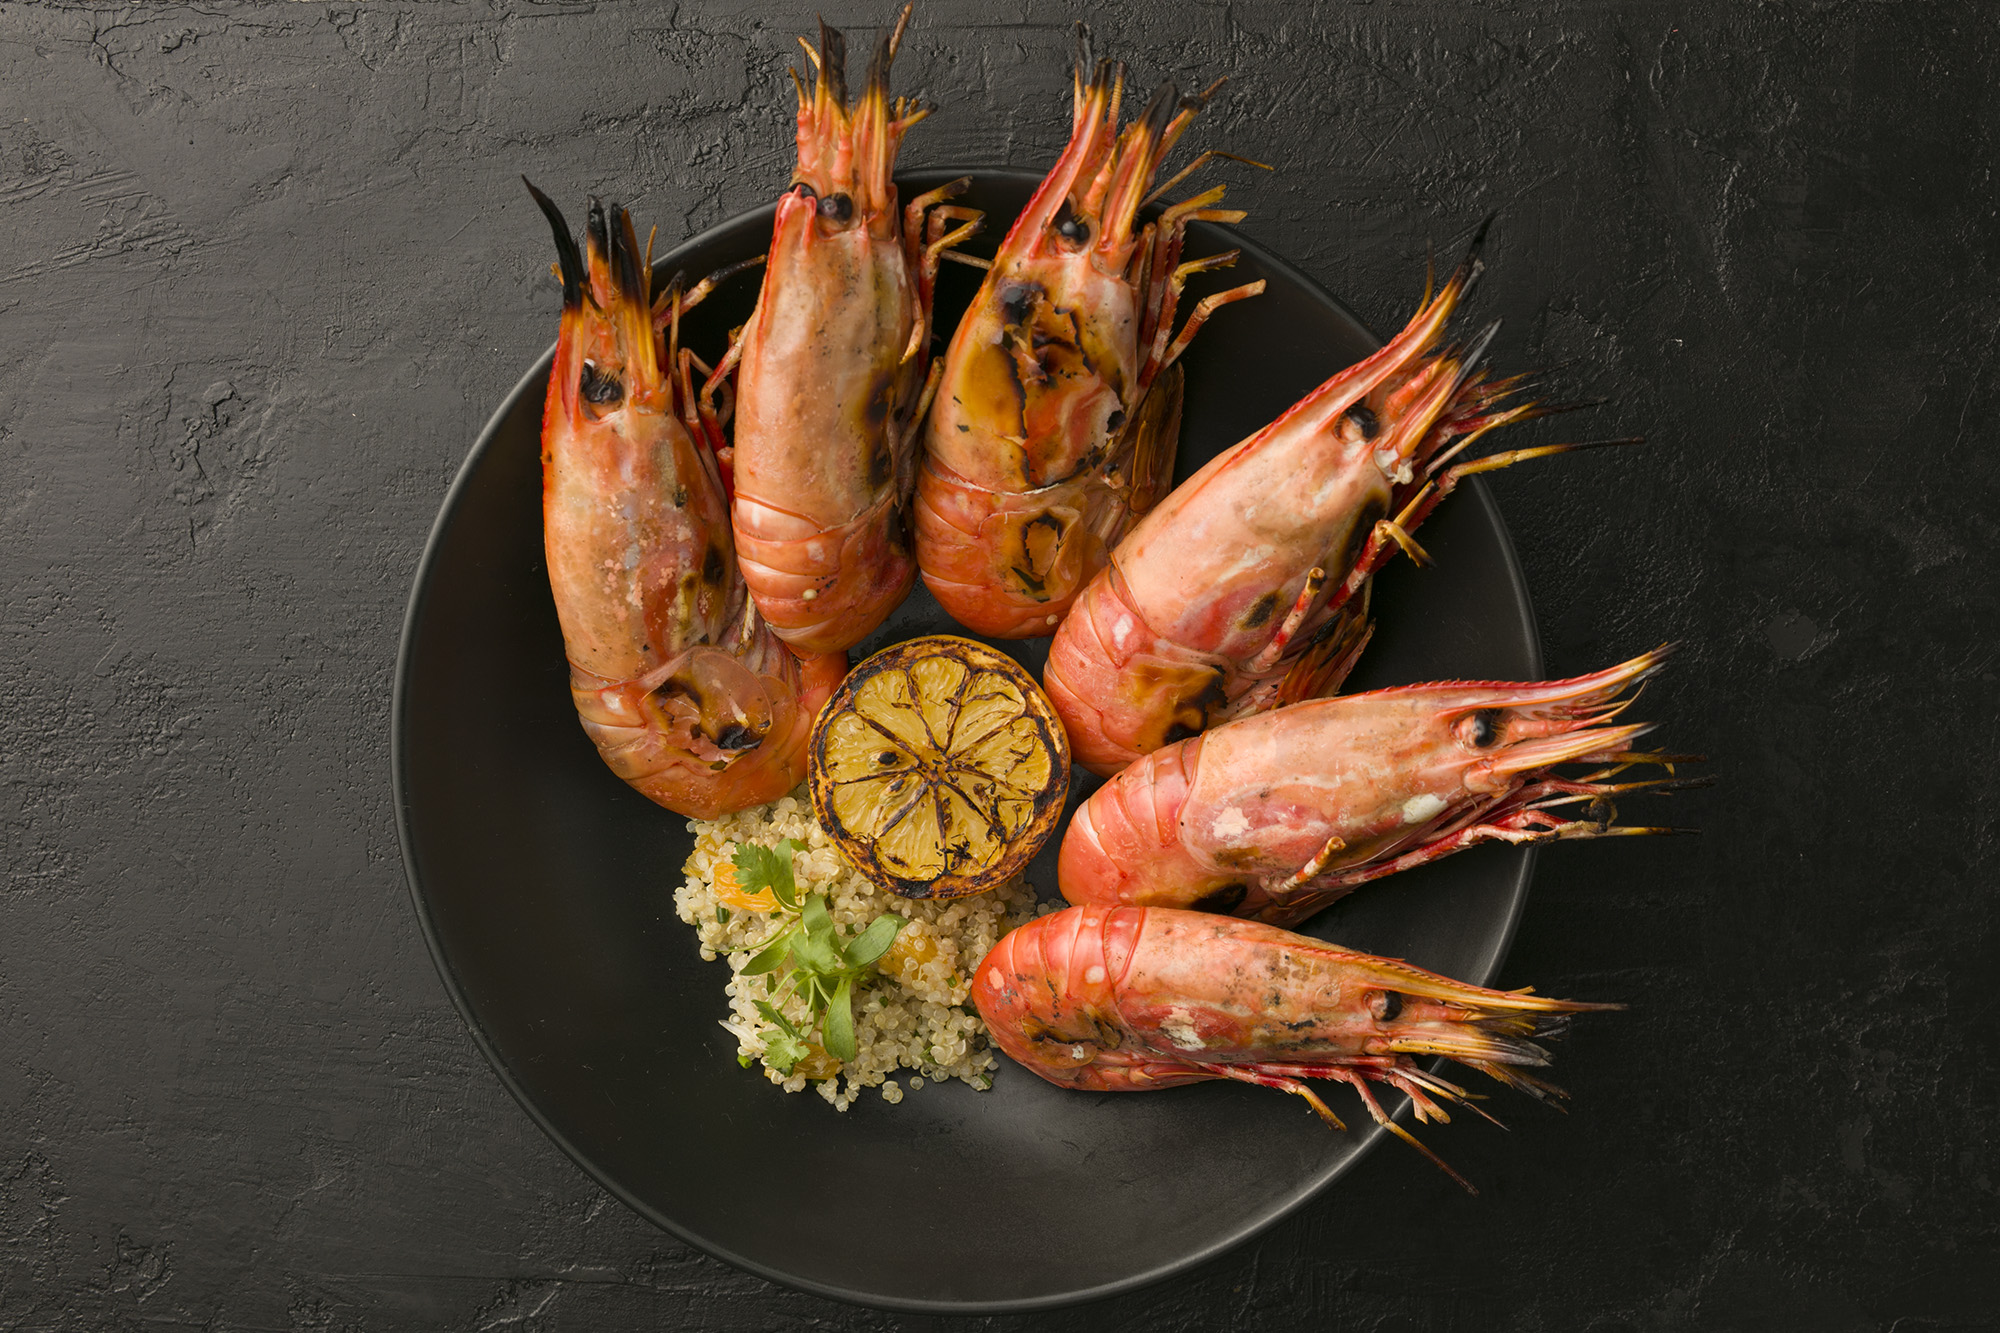 The Spot Prawn is a true California treasure when enjoyed fresh from the live tank.